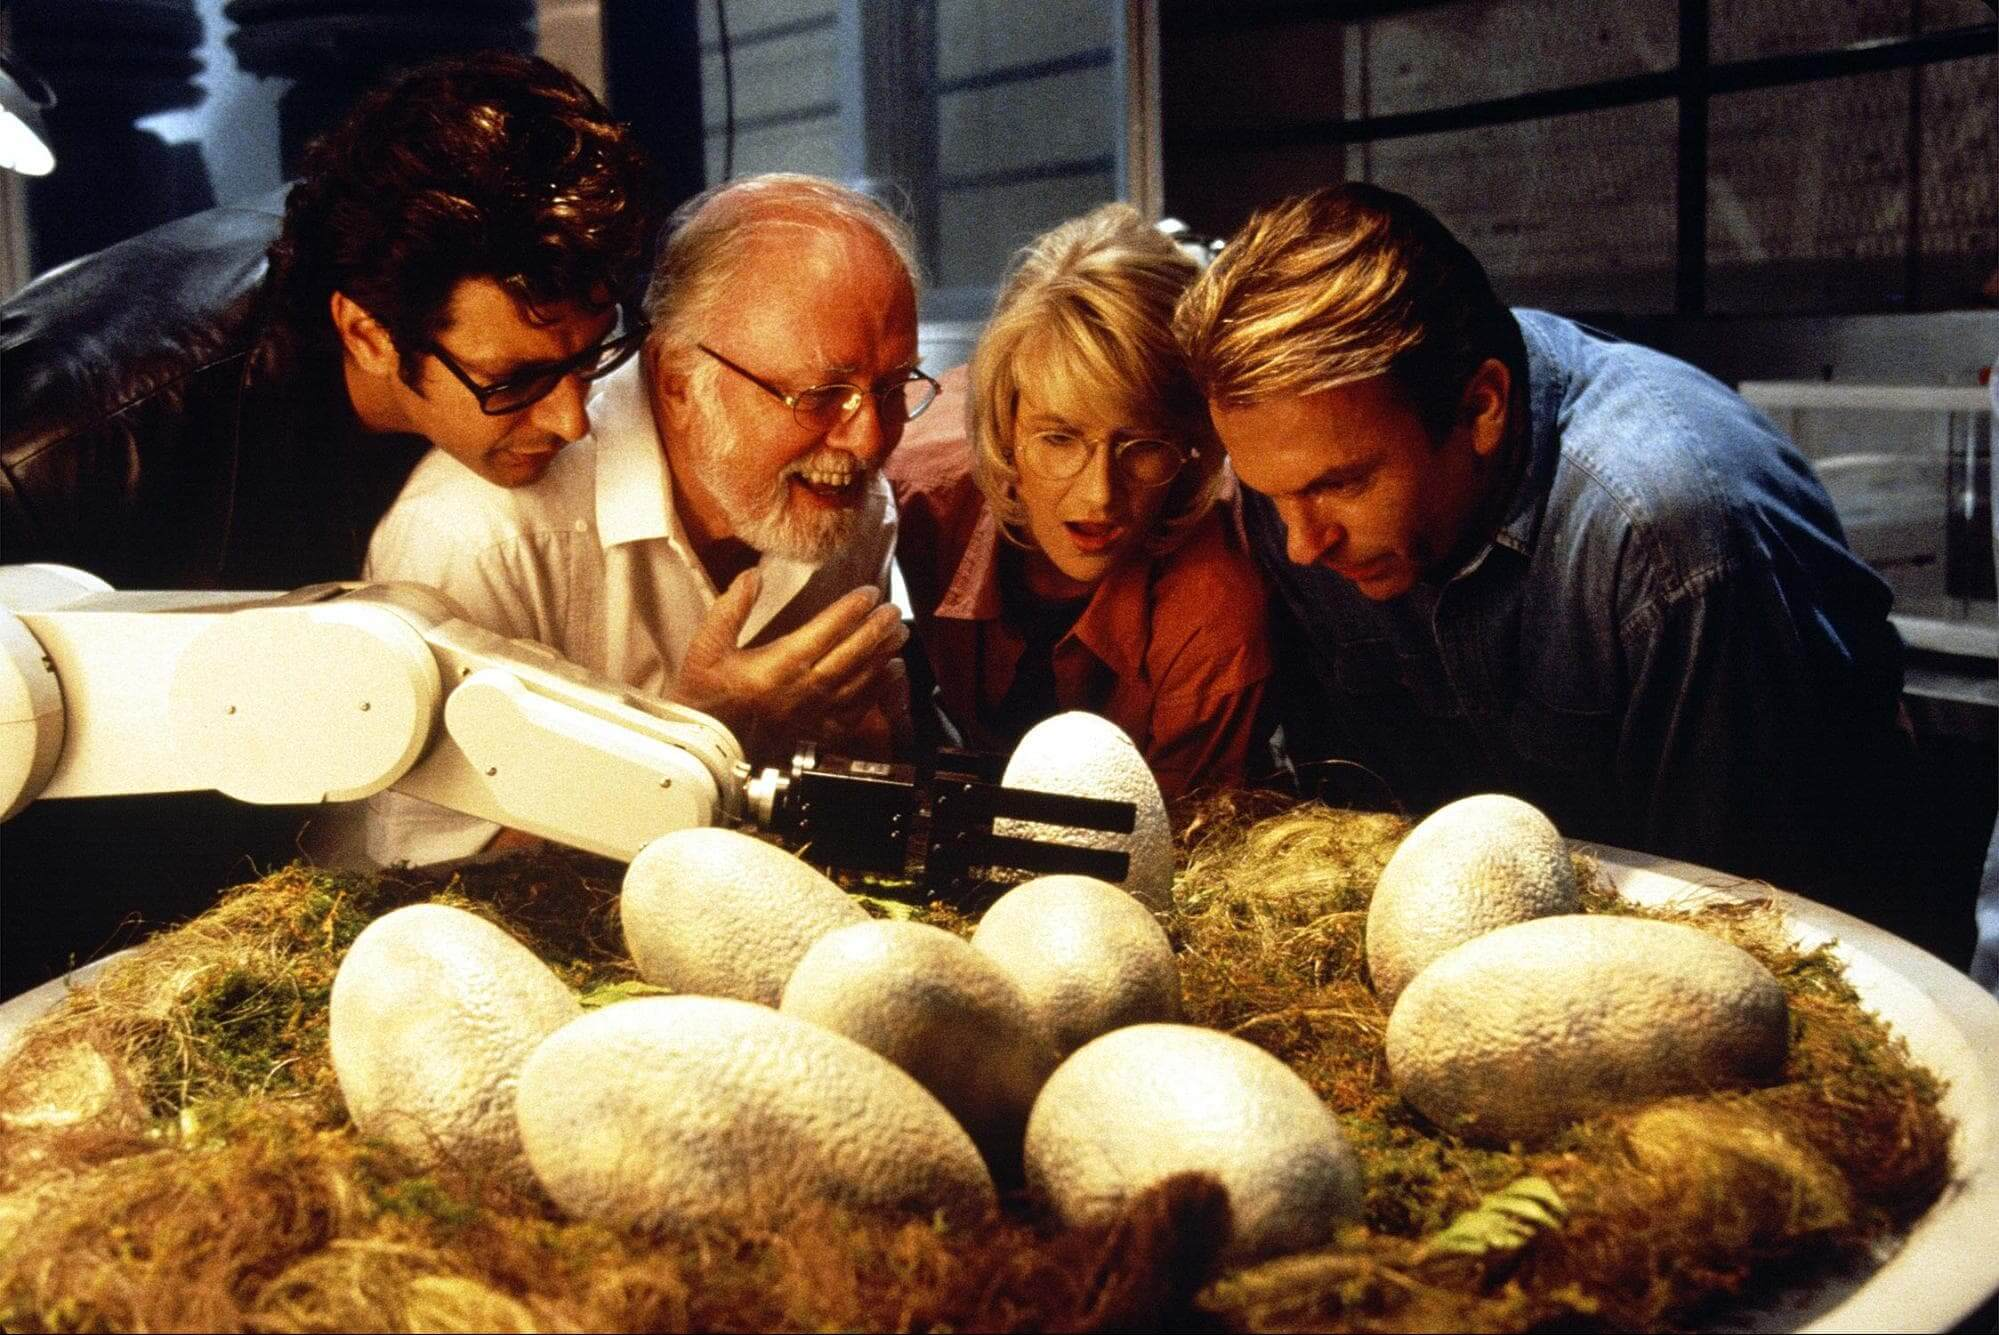 Medium Close Shot - The Art of the Camera Angle - Jurassic Park BTS